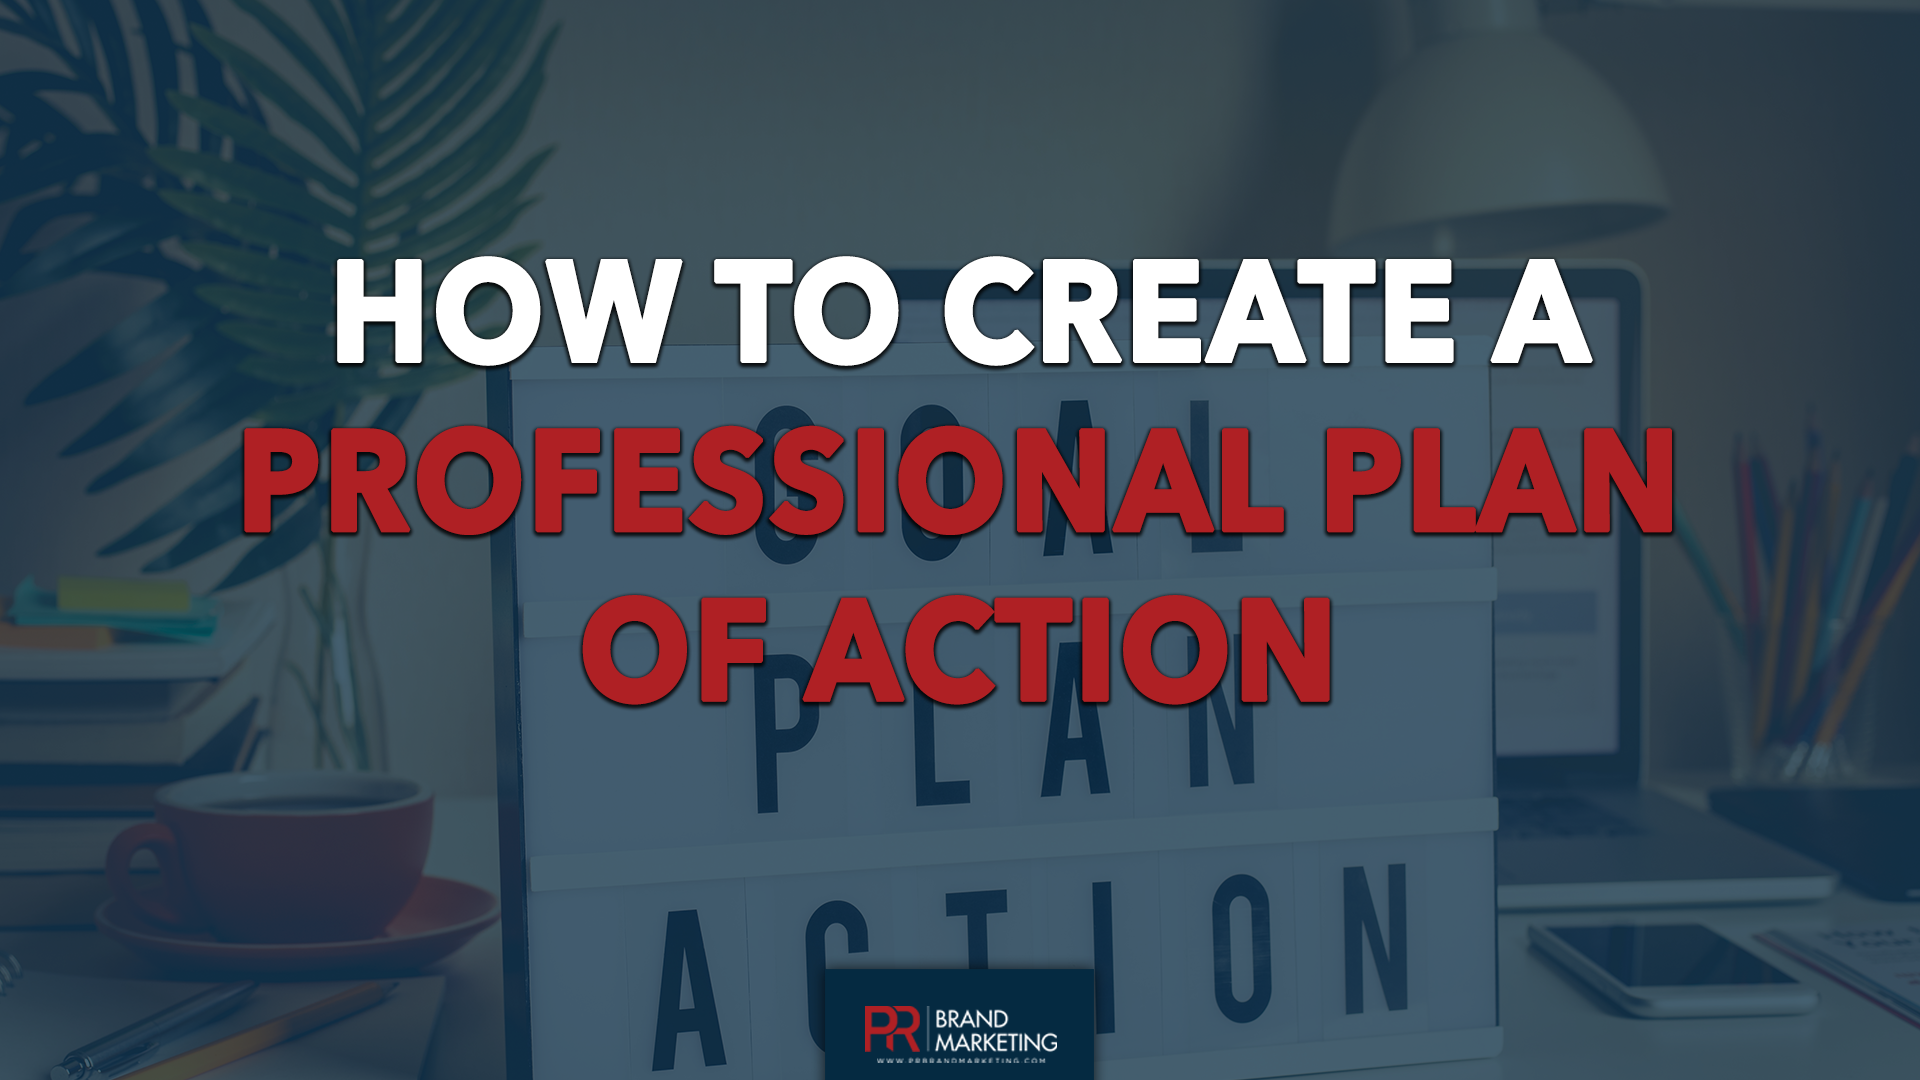 How to create a Proffesional Plan of Action